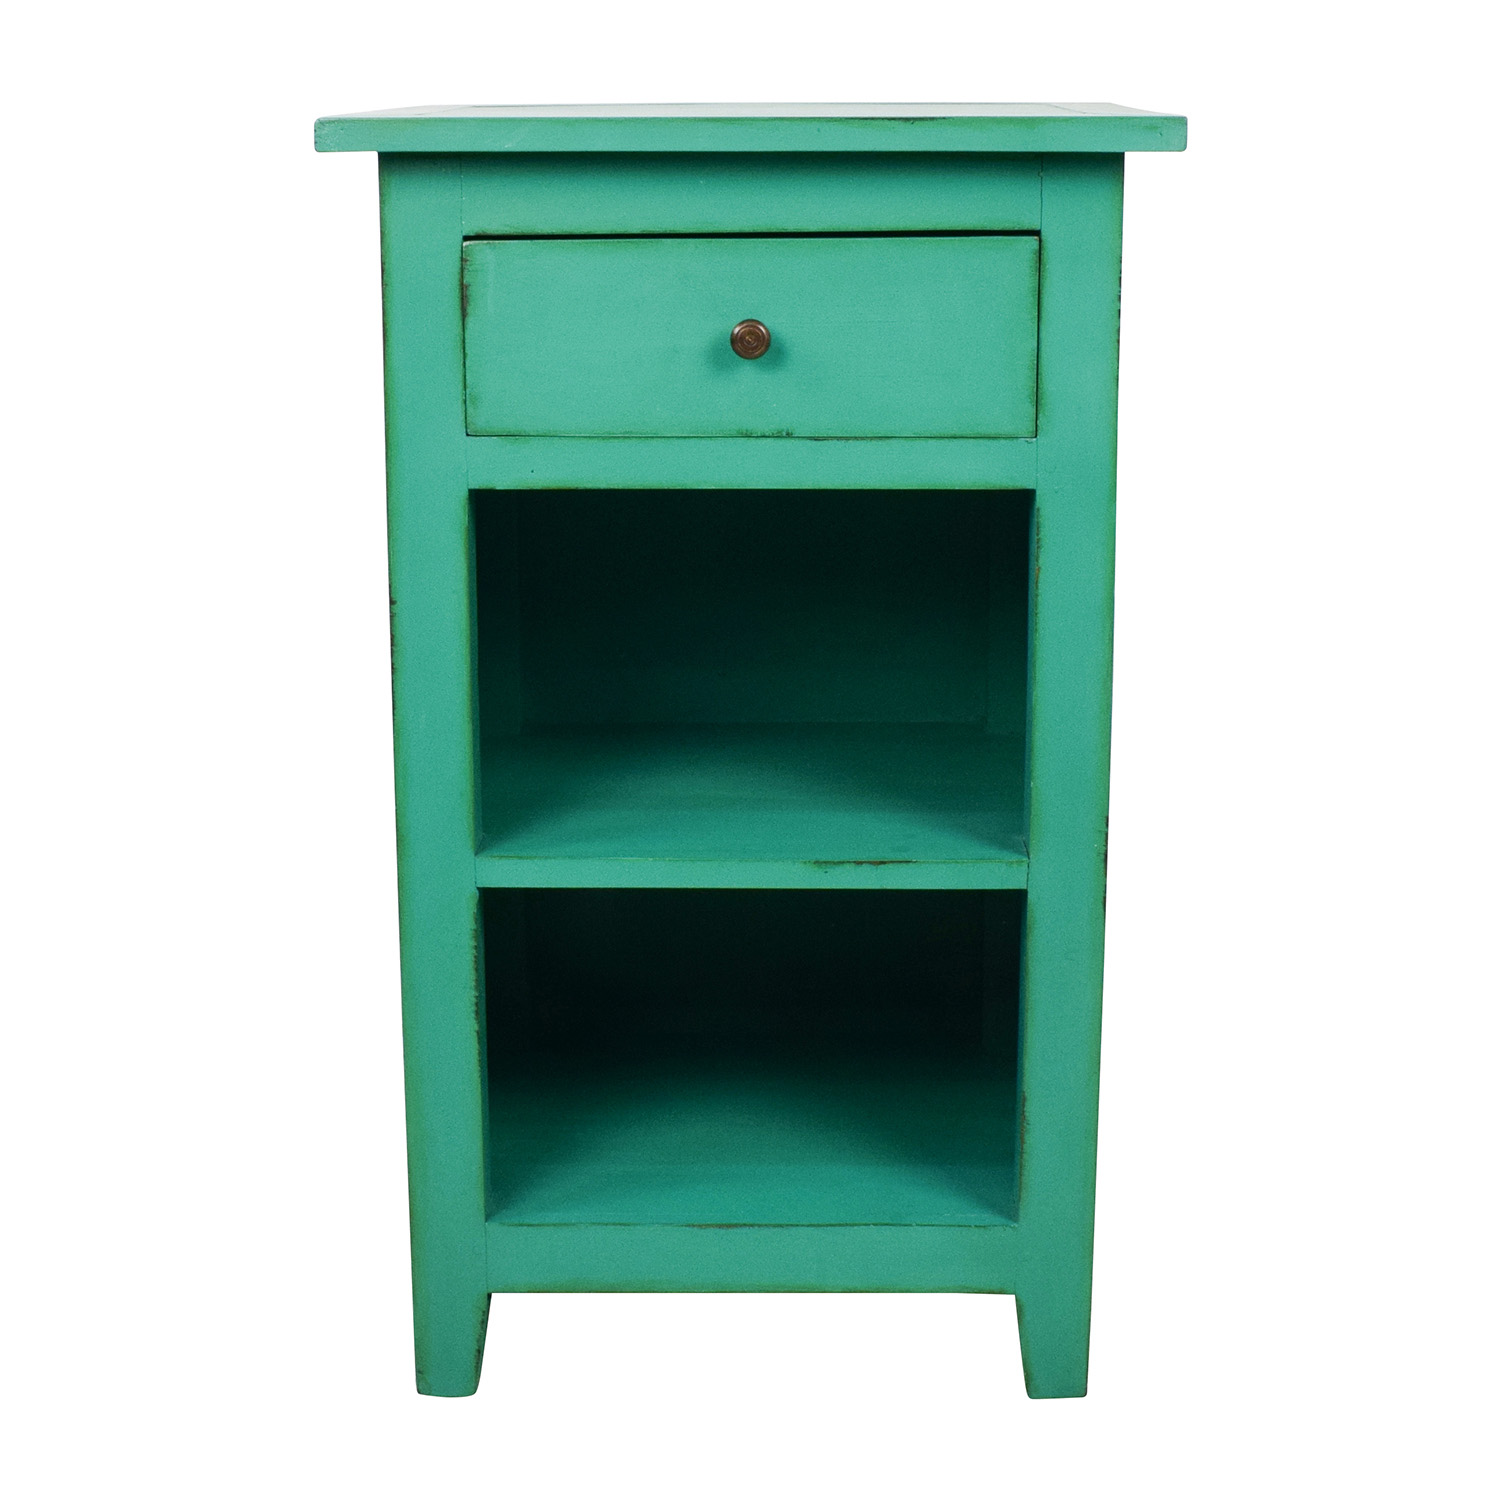 Nadeau Nadeau Rustic Green Nightstand Tables